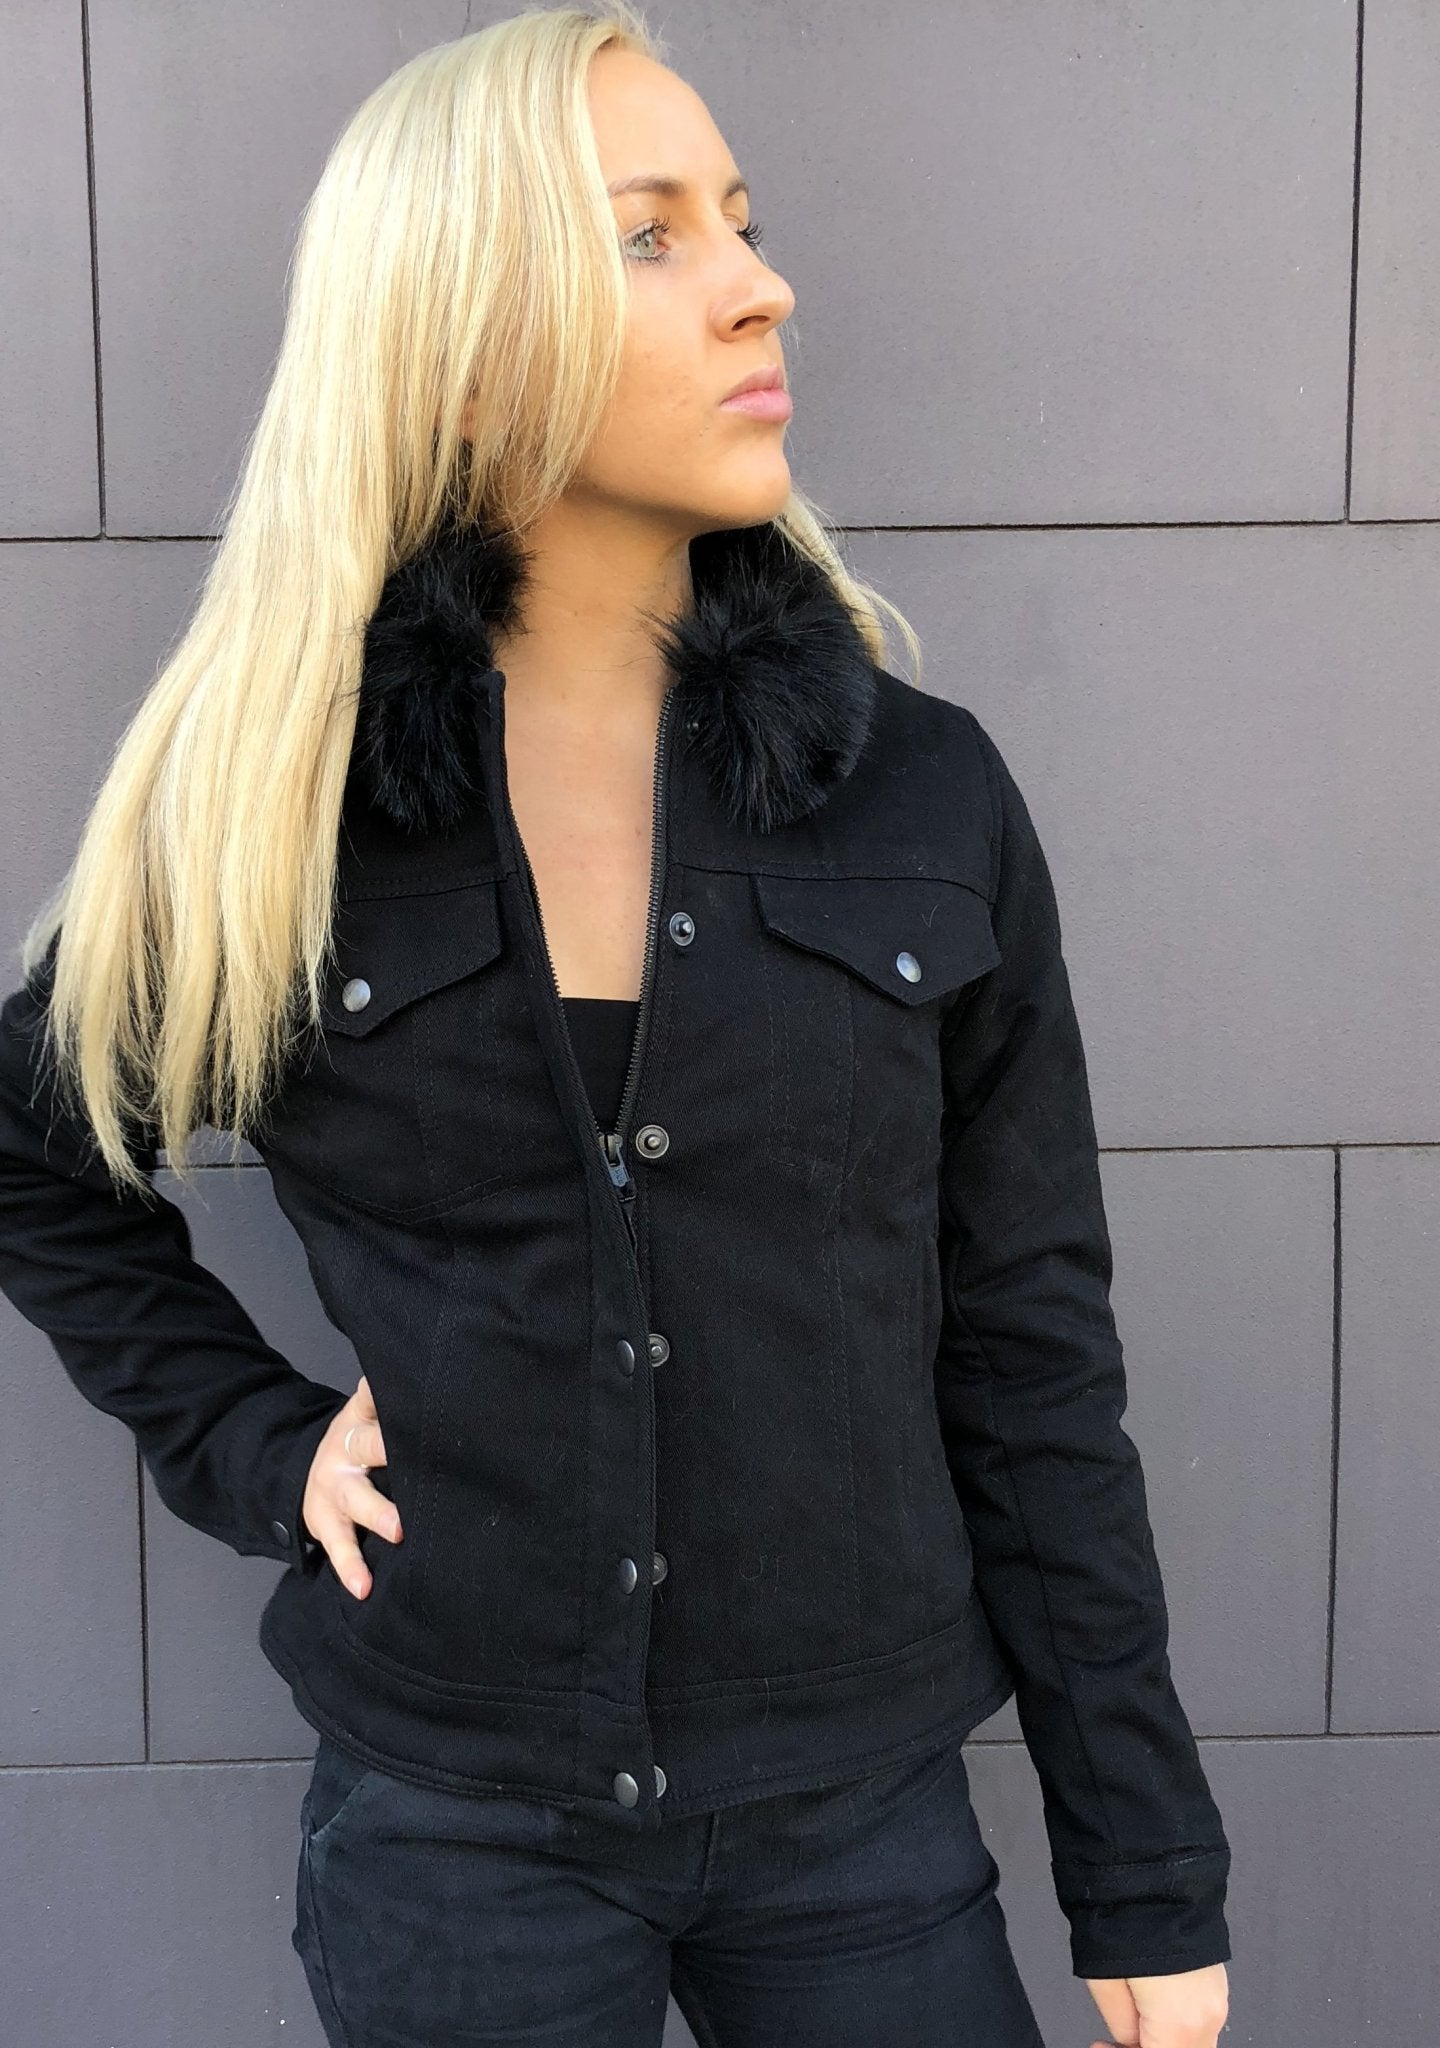 Blackbird - Blackbird Ladies Moscow Textile Jacket - Ladies Jackets - Salt Flats Clothing